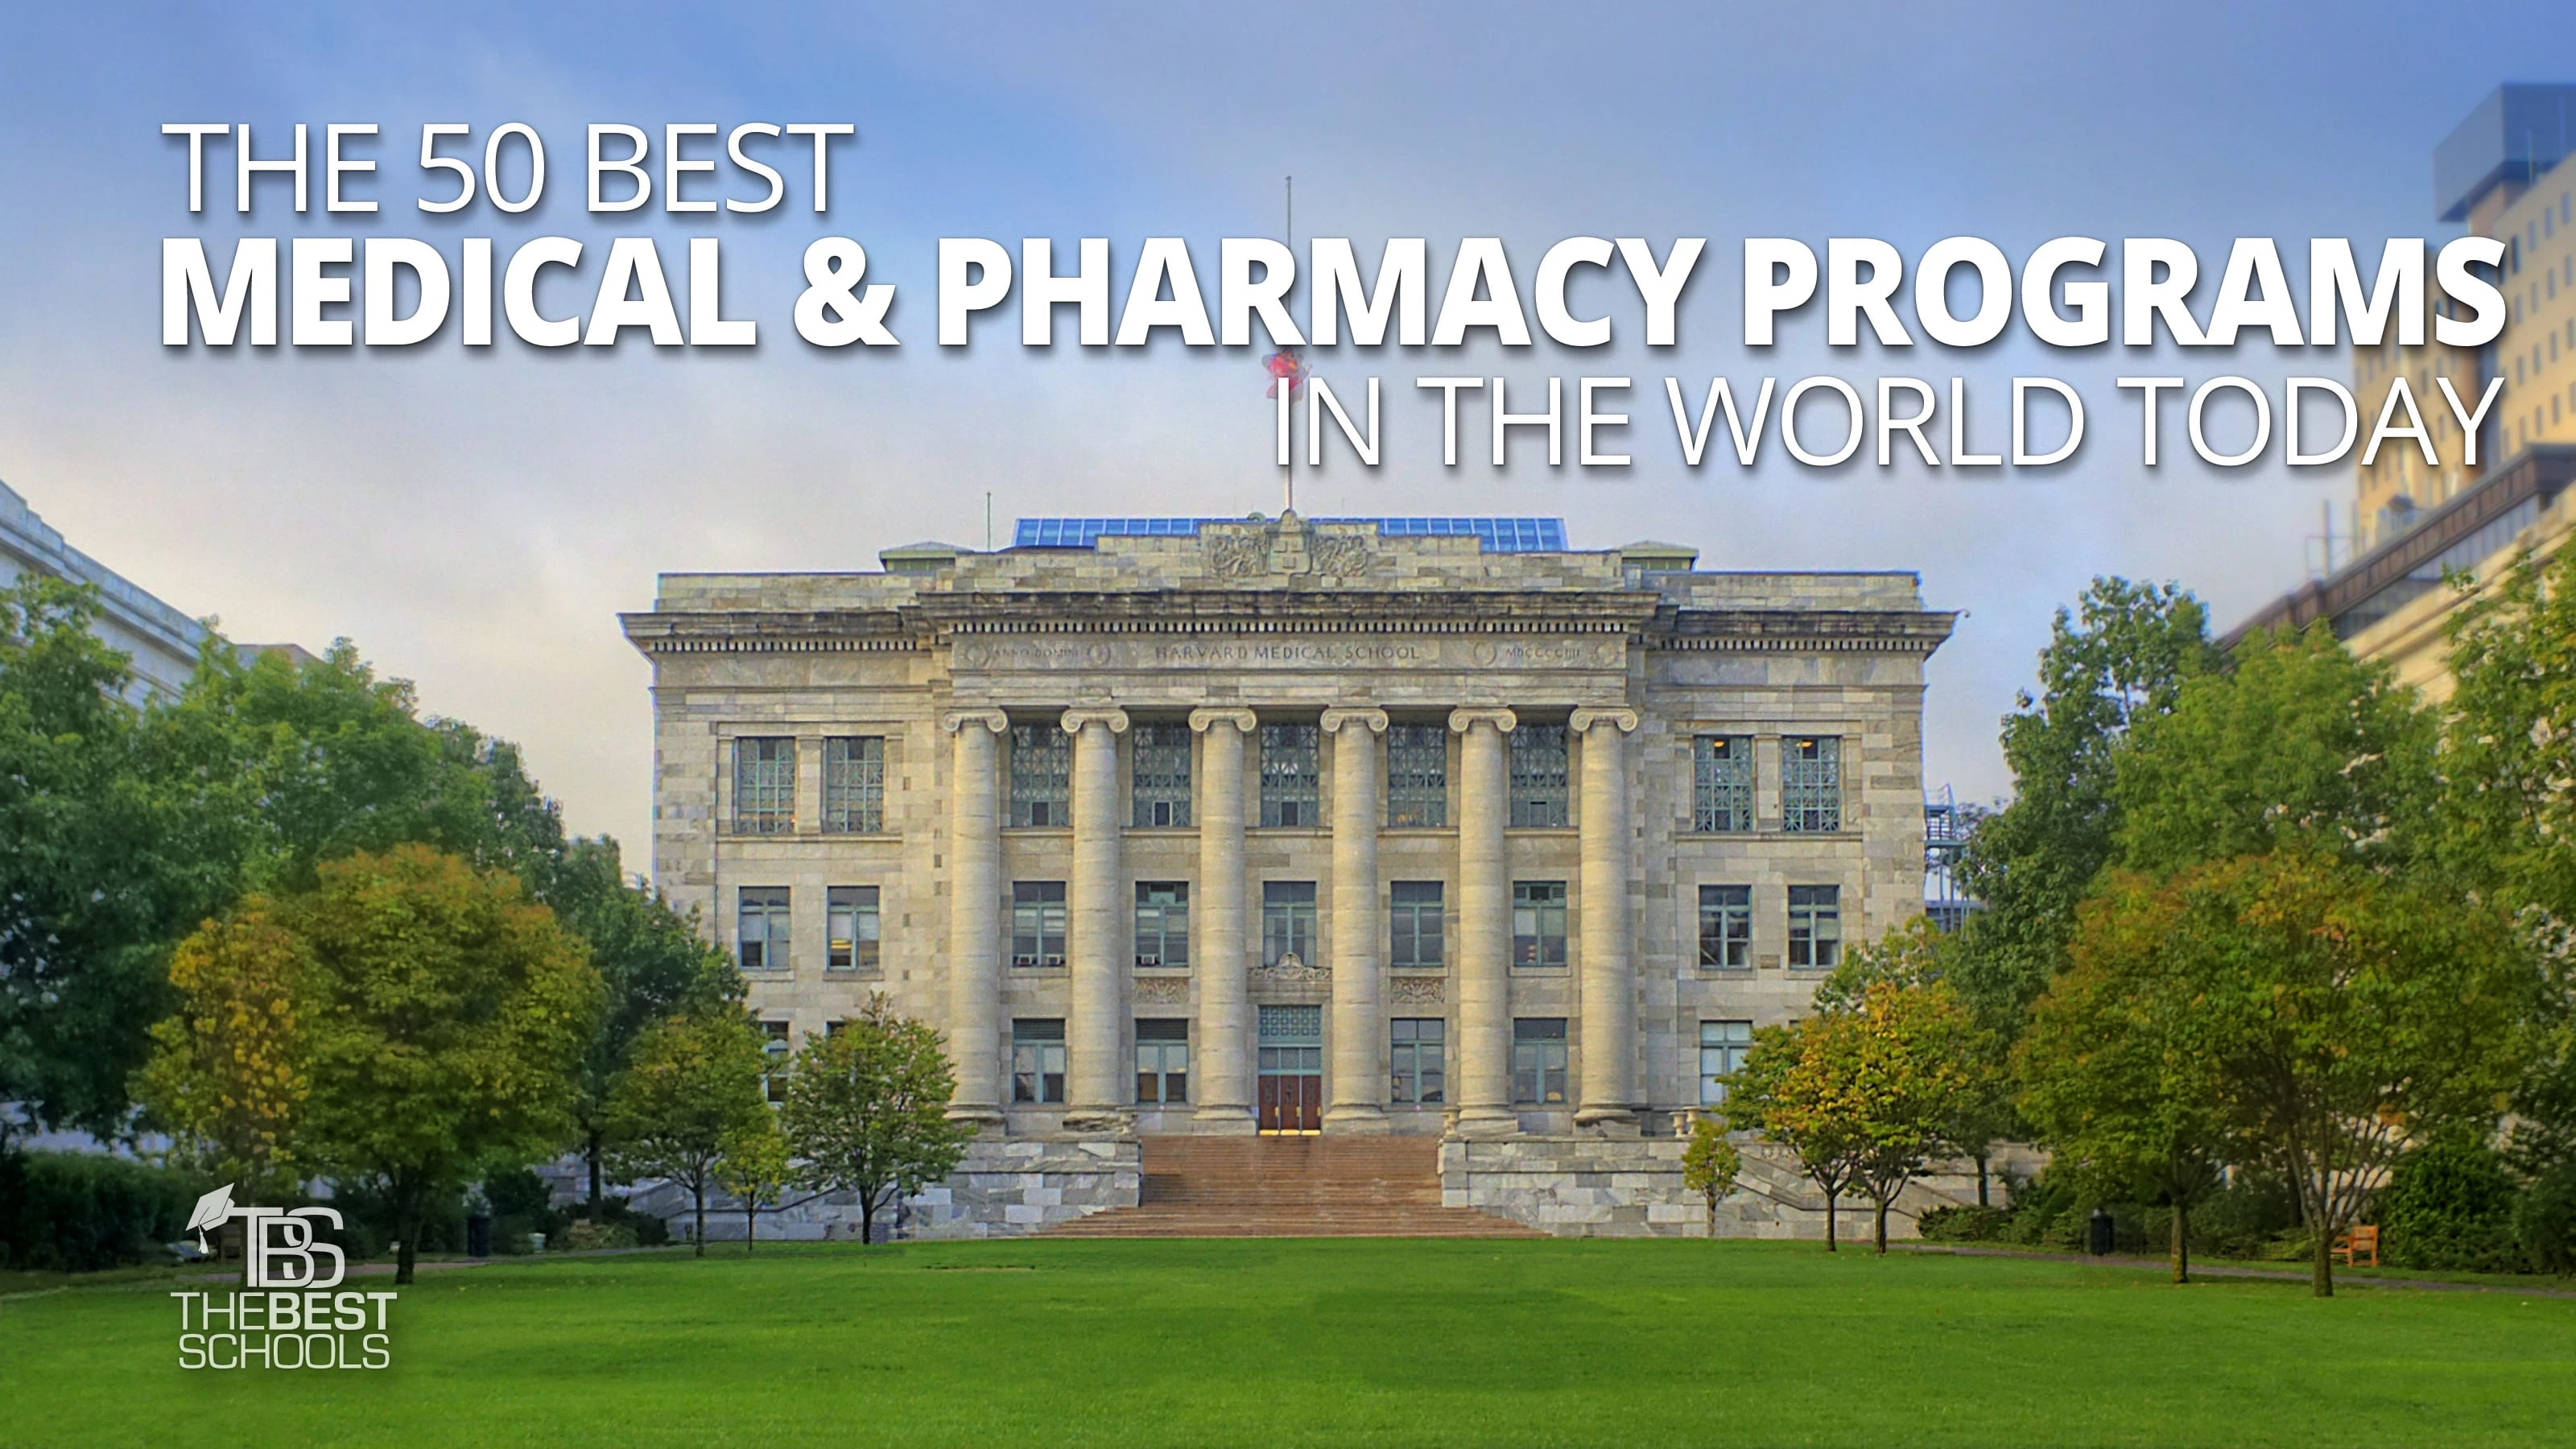 The 50 Best Medical & Pharmacy Programs in the World Today